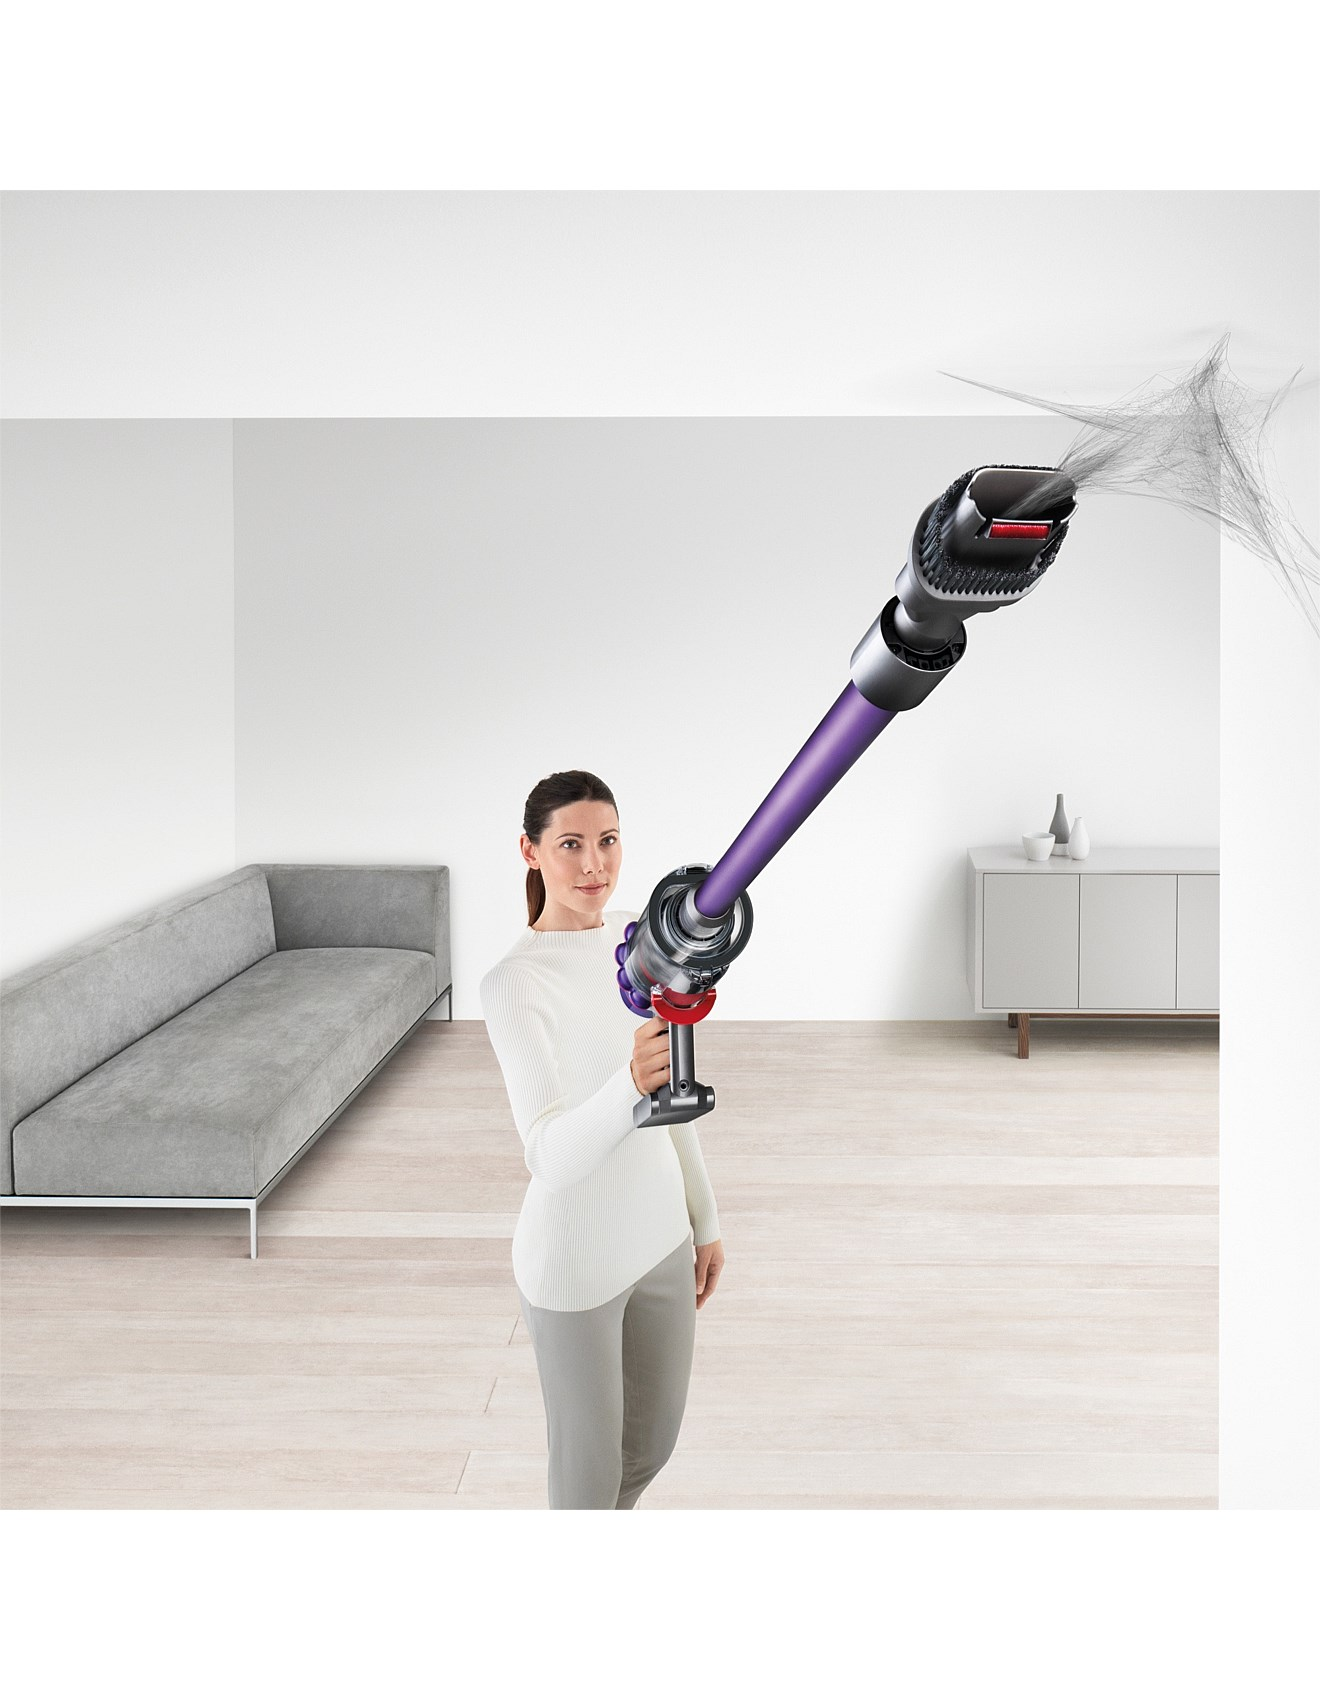 cyclone v10 animal handstick vacuum. Black Bedroom Furniture Sets. Home Design Ideas